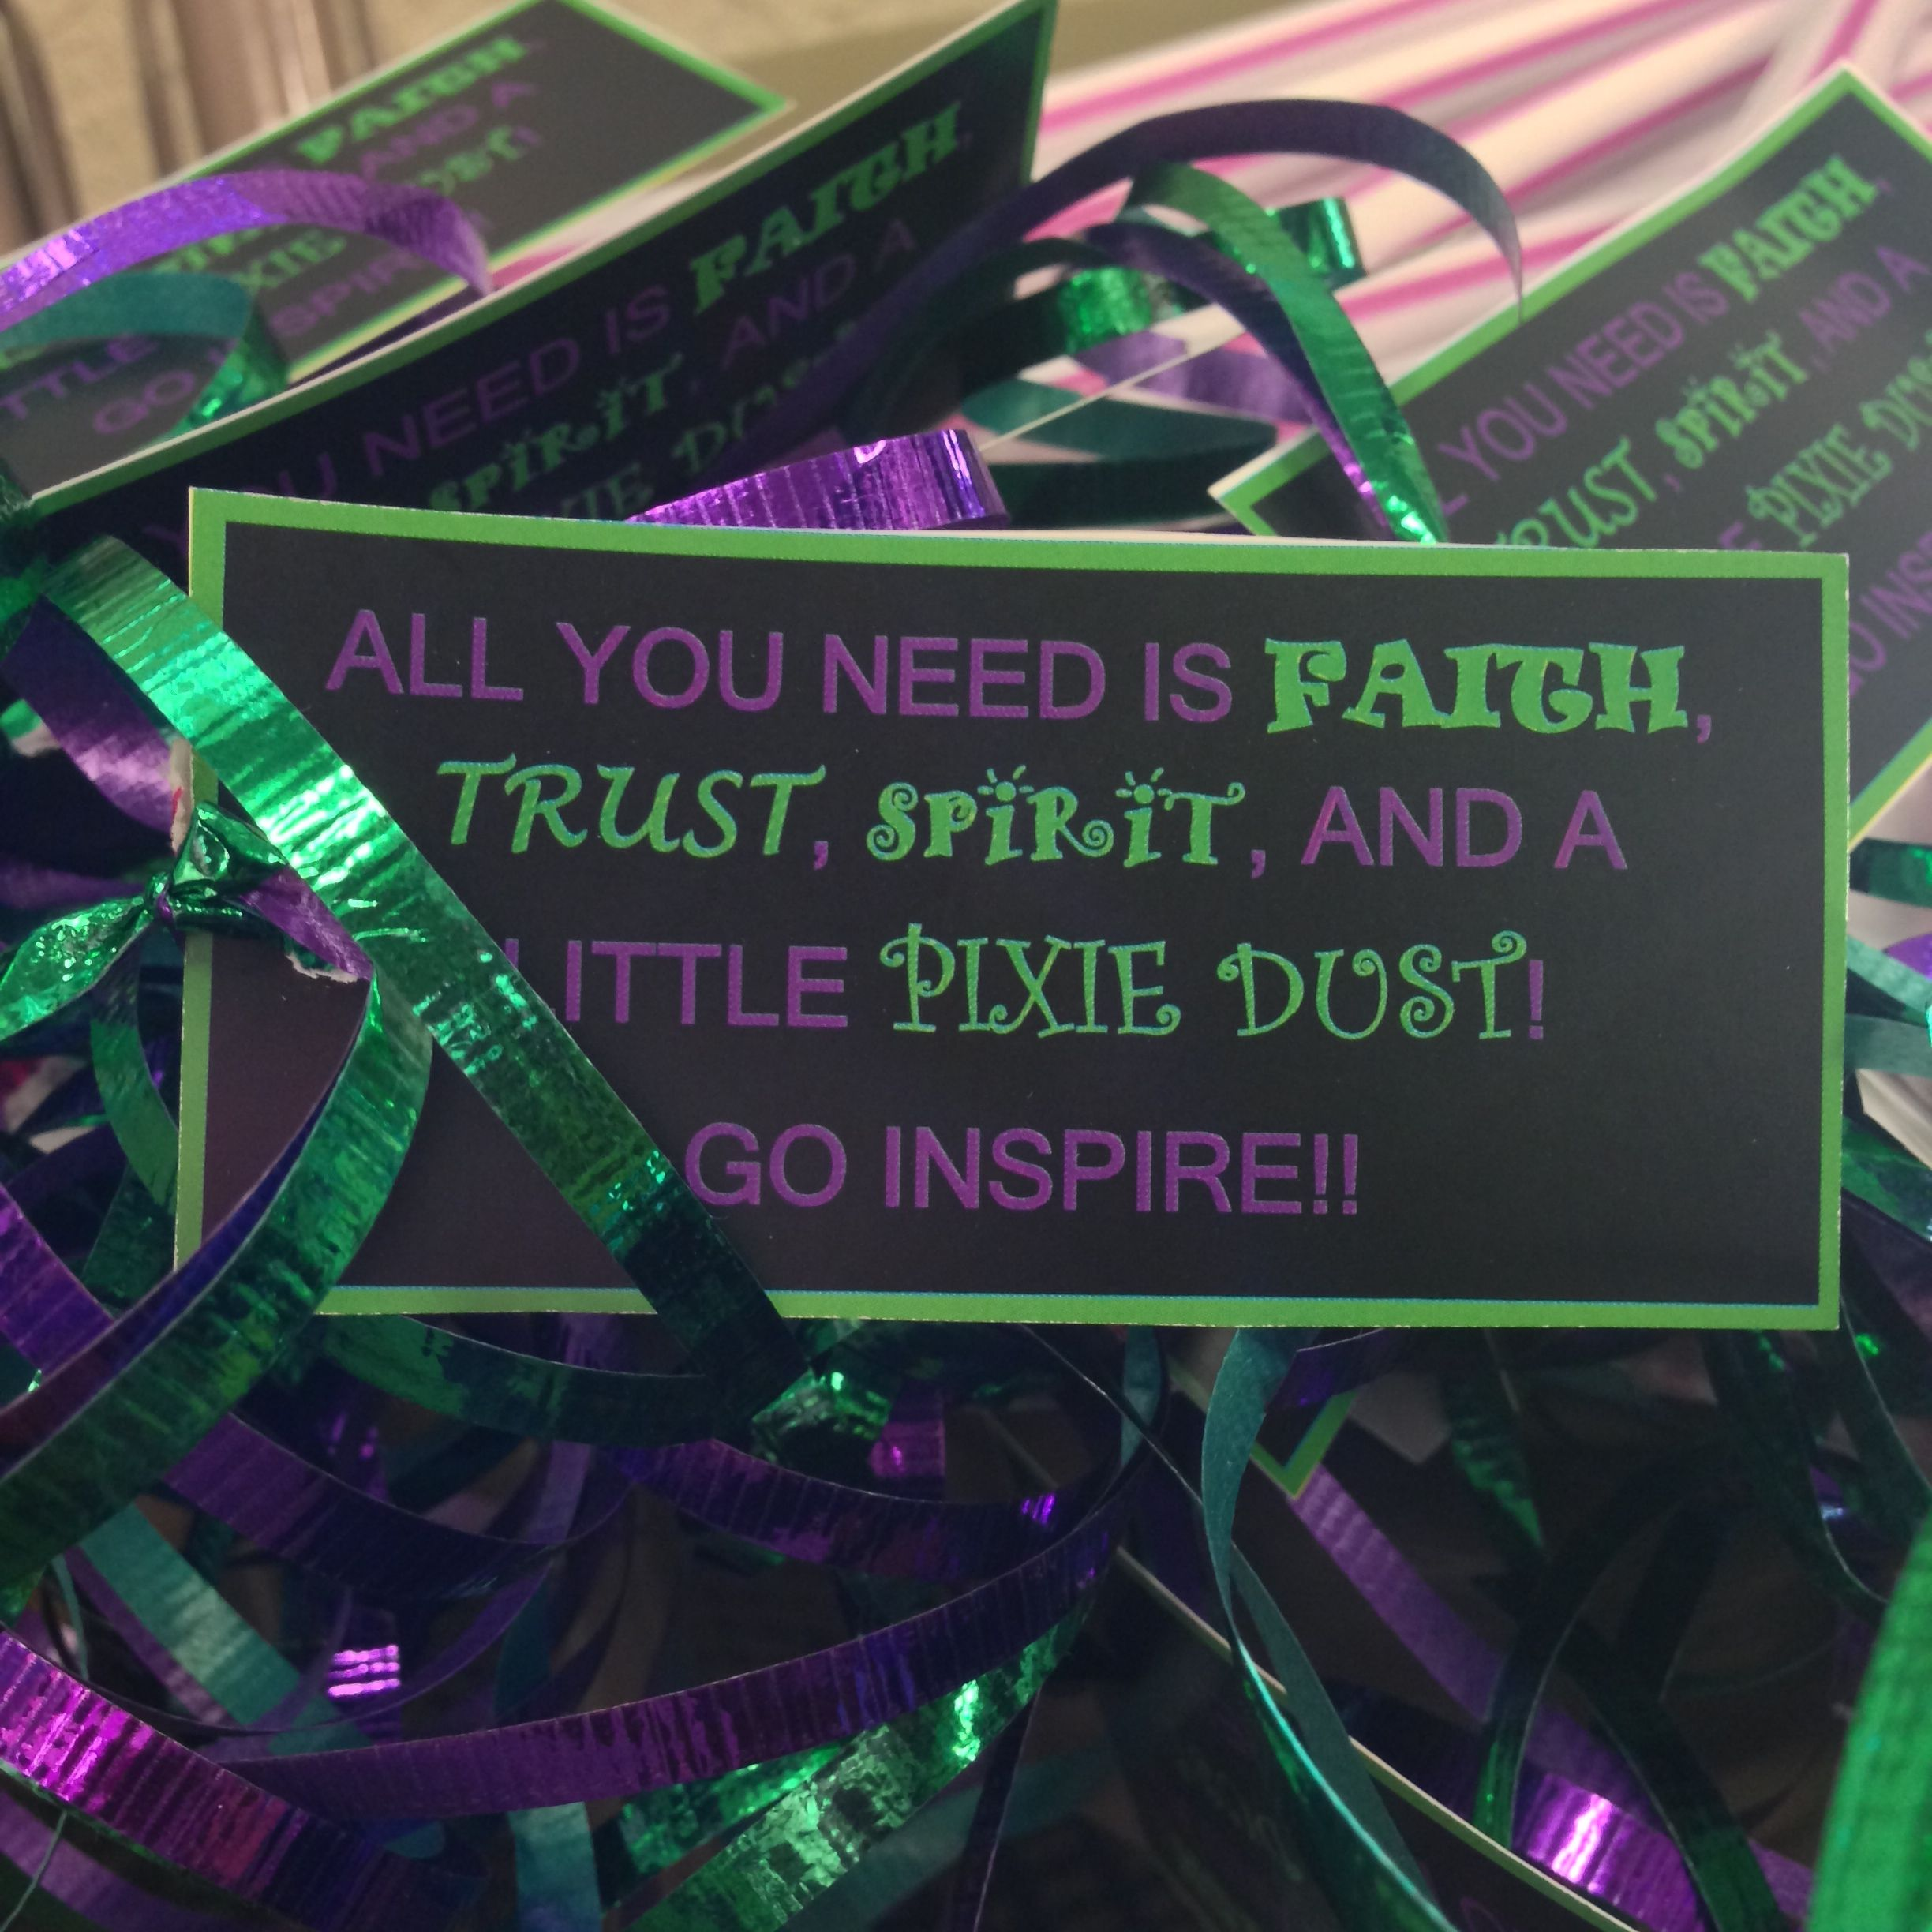 """Post practice snack: Large Pixie sticks with tags that read """"All you need is Faith, Trust, Spirit and a little Pixie Dust"""""""